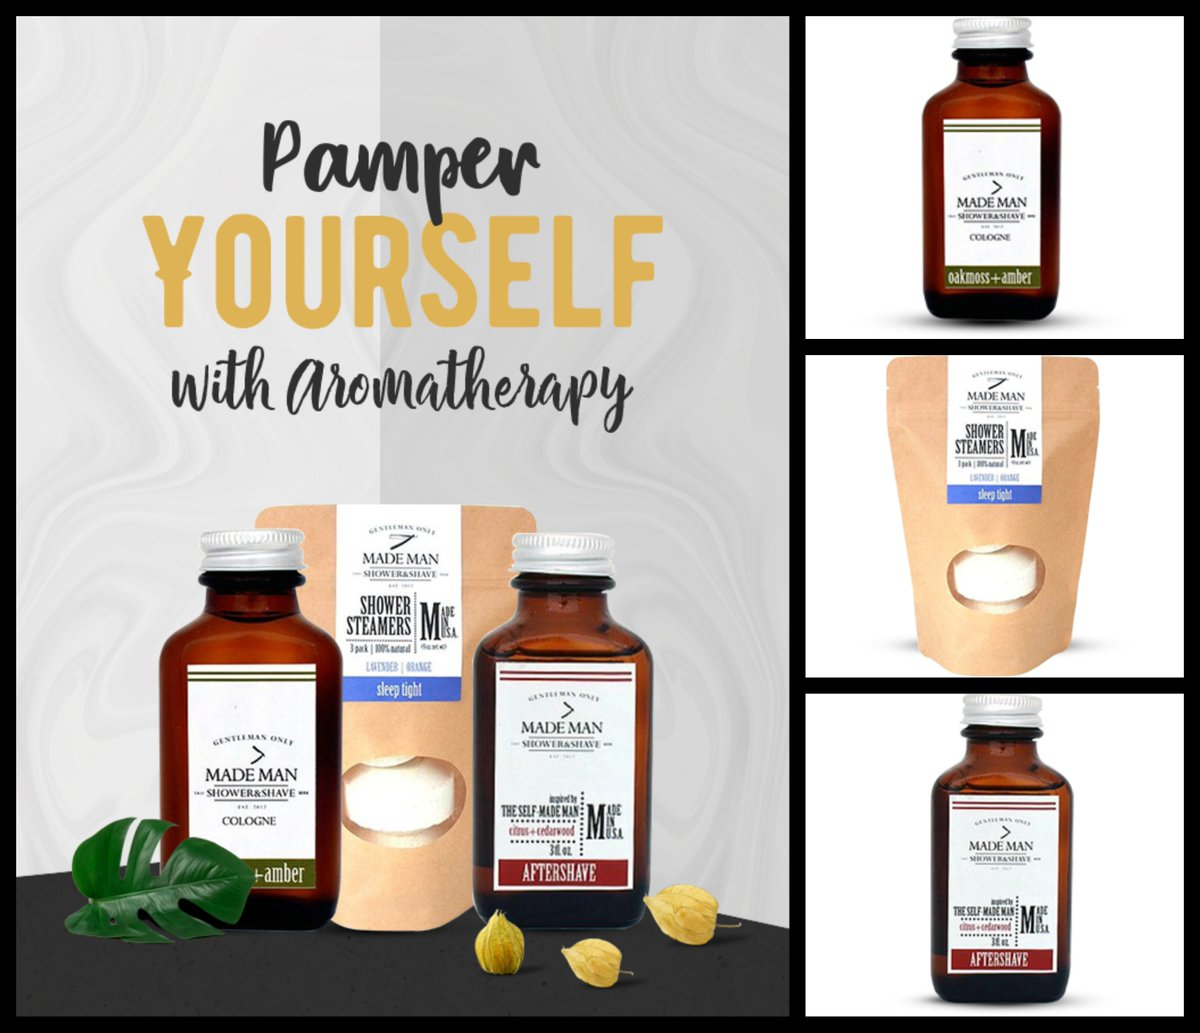 Pamper Yourself with Aromatherapy. Shop Our New Arrival Man-Made Brand.  https://rpst.page.link/jUUy  #menshave #aftersplash #aftershave #soothingsplash #bathbomb #bath #mensgroomingpic.twitter.com/bQBMwKNFv2